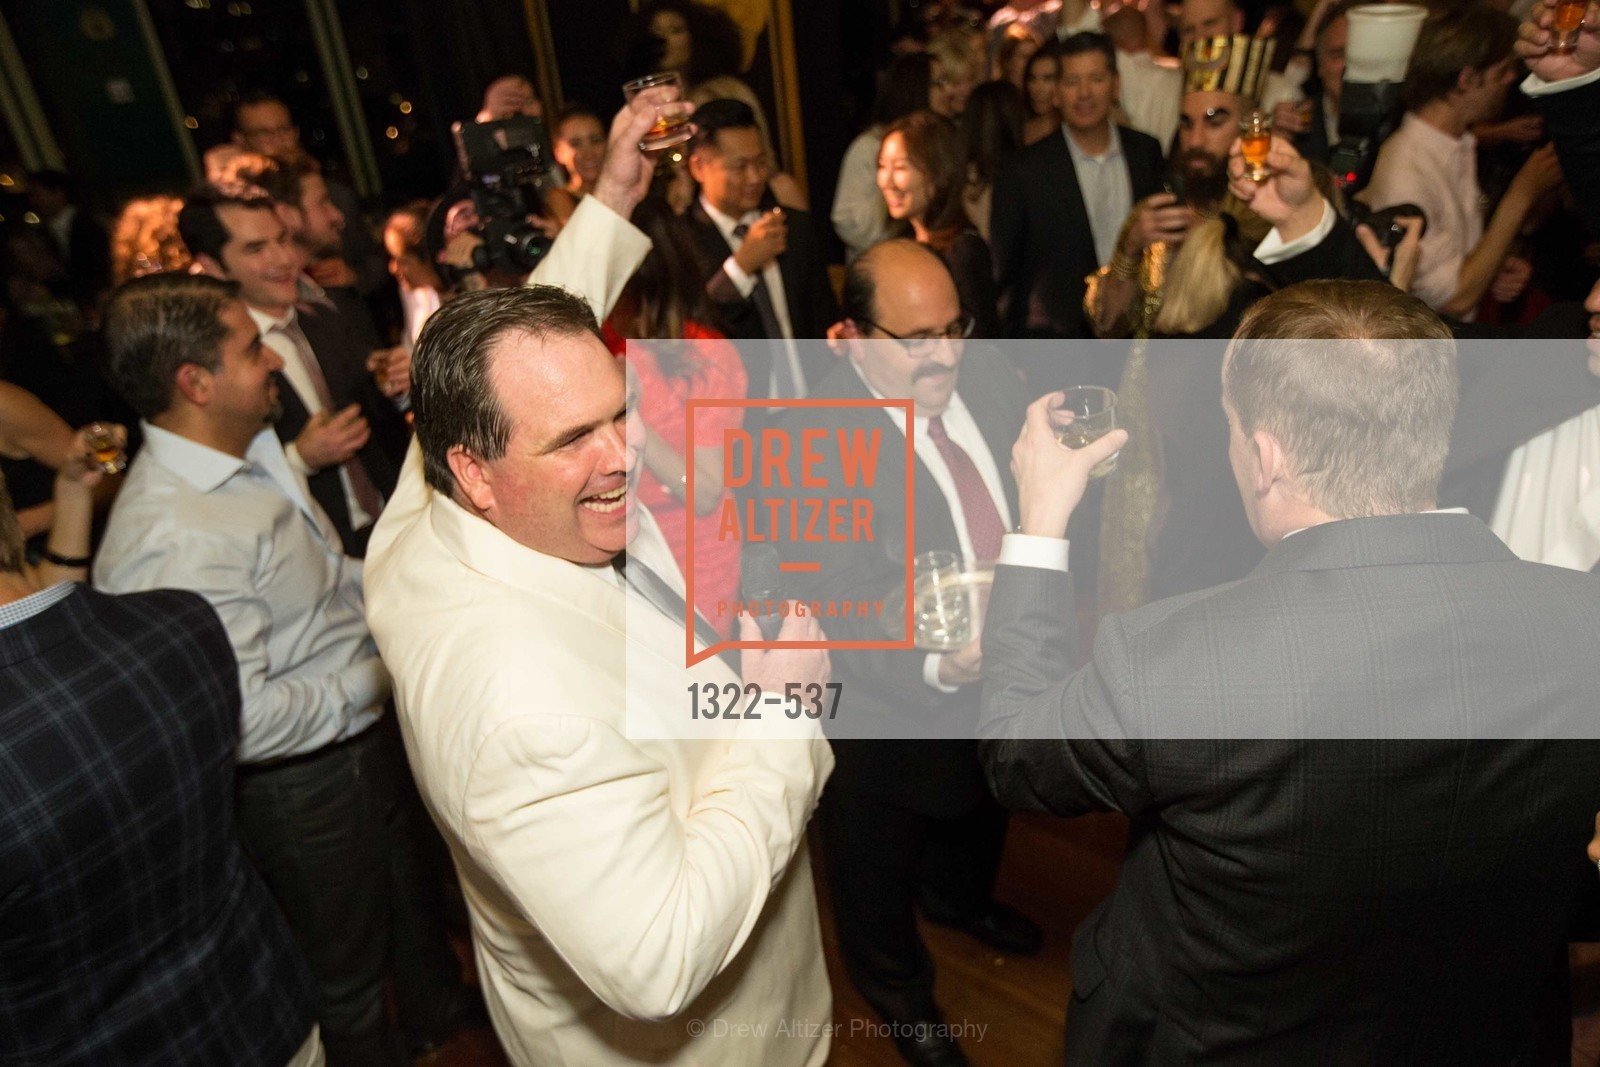 John Brady, TOP OF THE MARK'S 75TH Anniversary Party, US, November 7th, 2014,Drew Altizer, Drew Altizer Photography, full-service event agency, private events, San Francisco photographer, photographer California